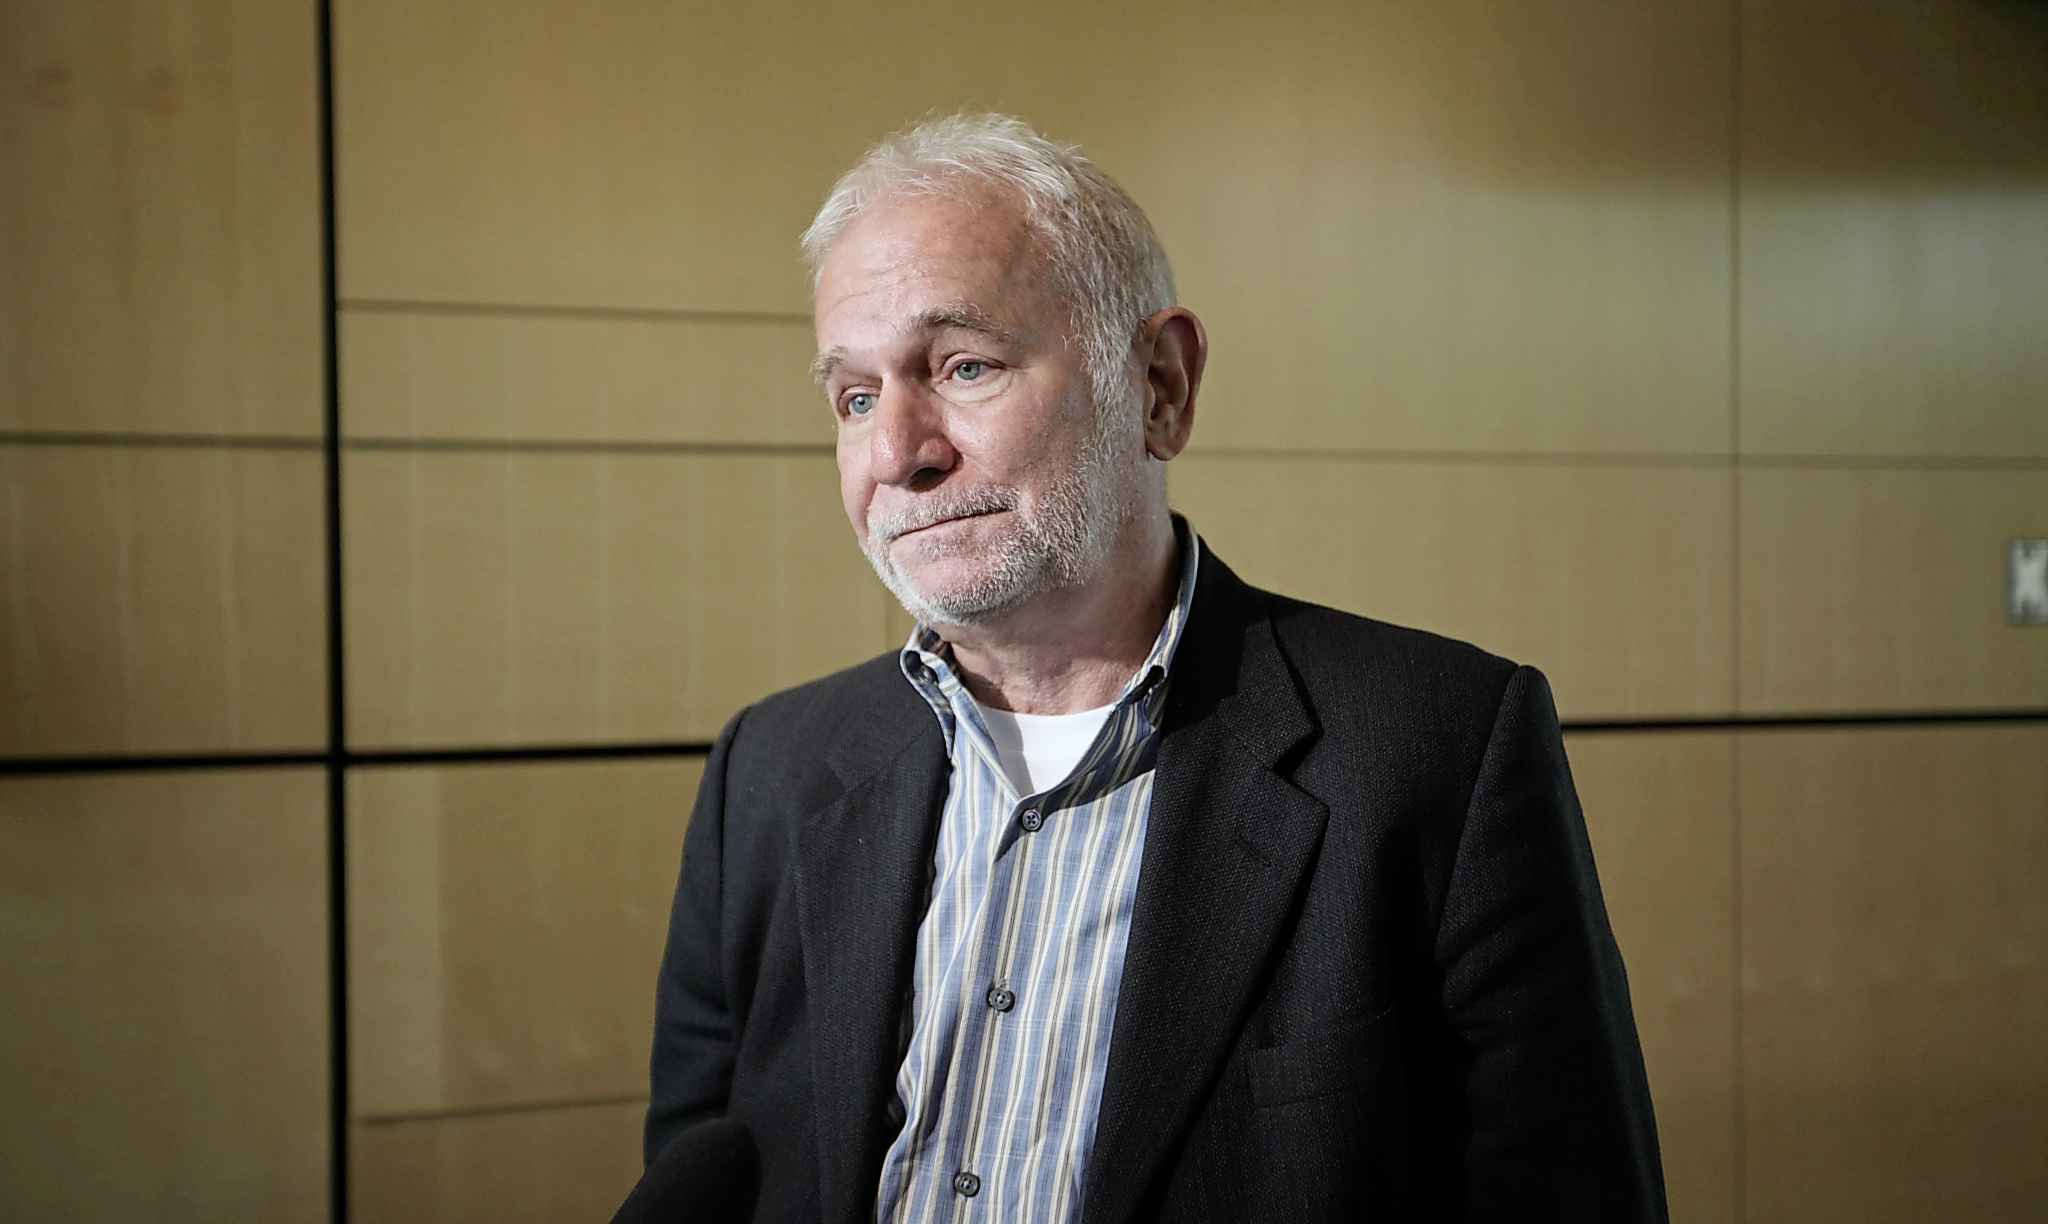 Dr. David Peachey's 2017 report on the restructuring of Winnipeg hospitals triggered a dramatic reconfiguration of services, including the closure of three emergency rooms in the city.